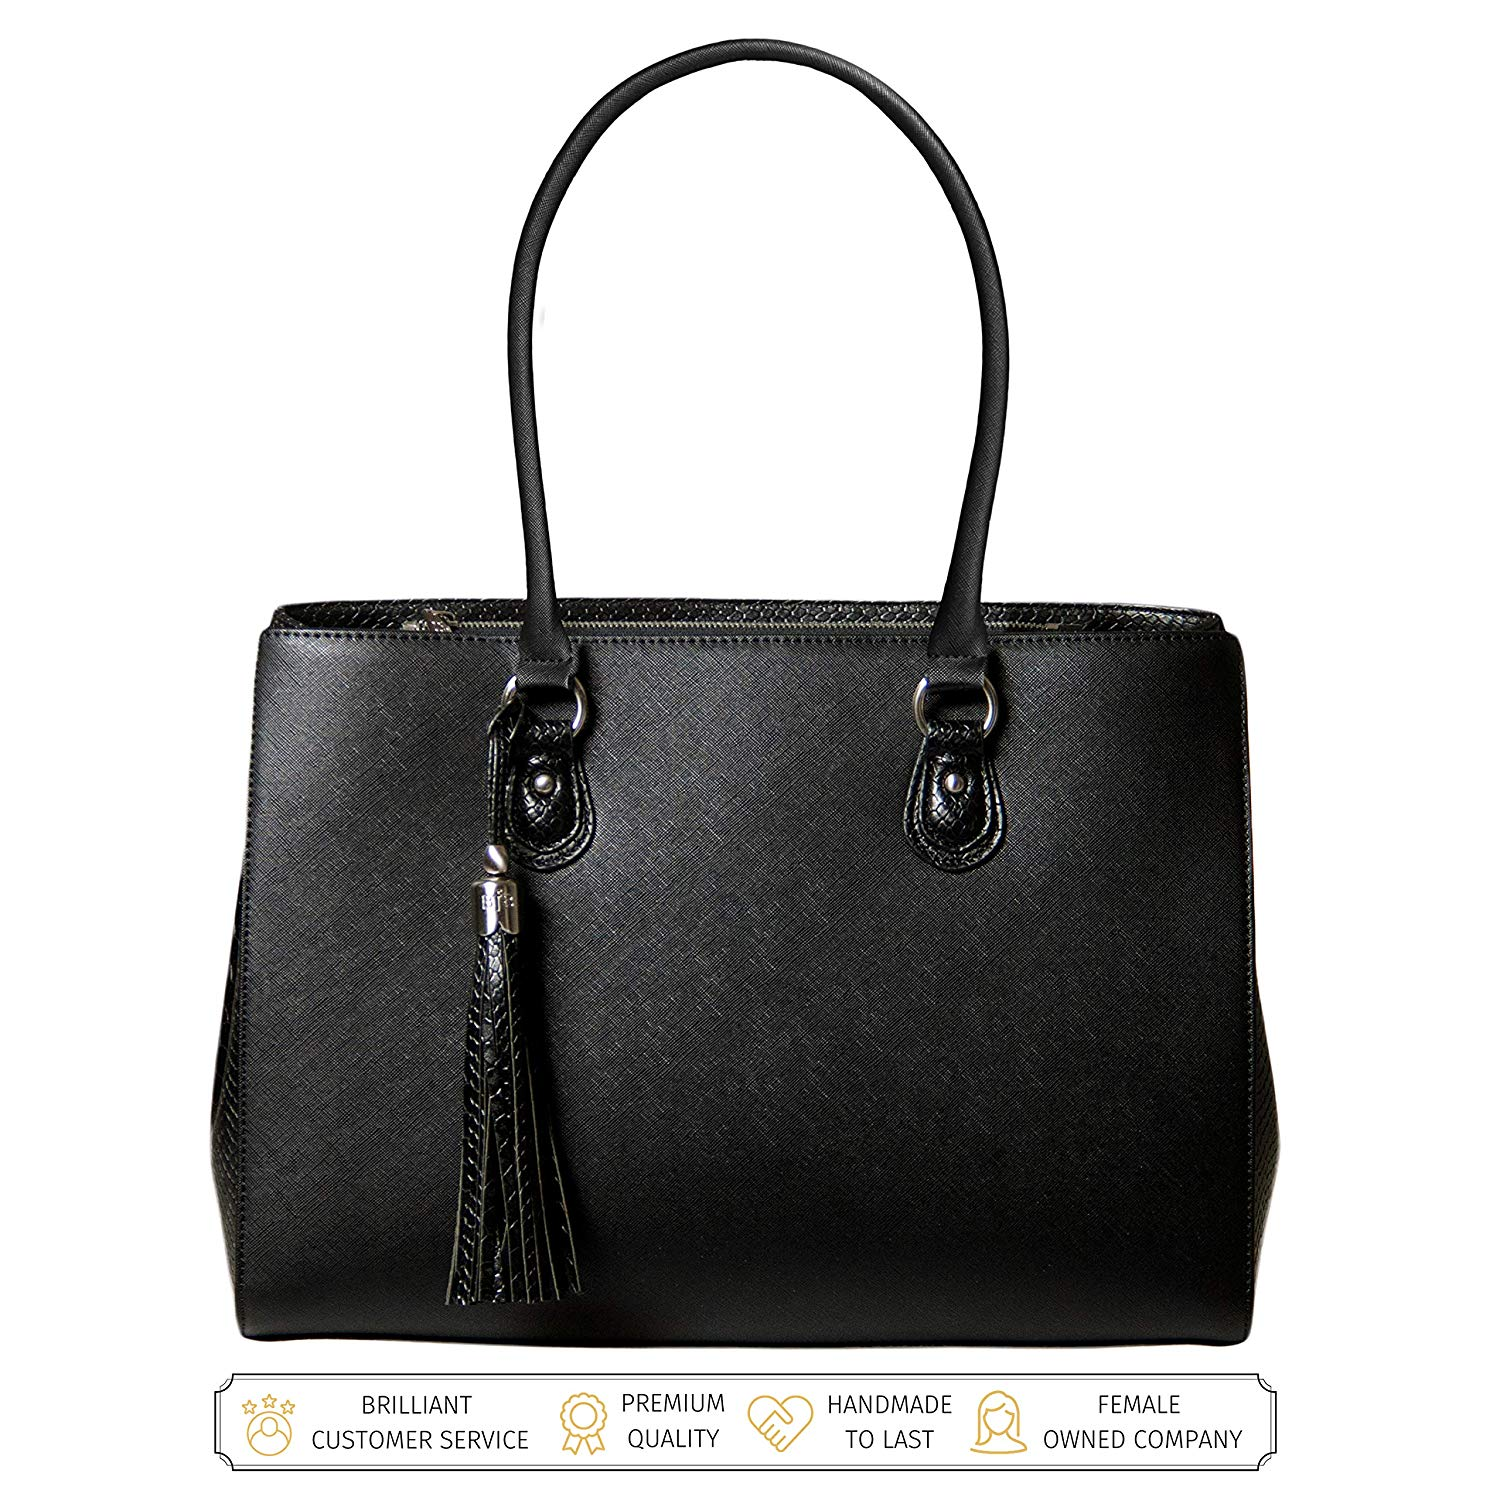 12 Best Fashionable & Affordable Laptop Bags 2